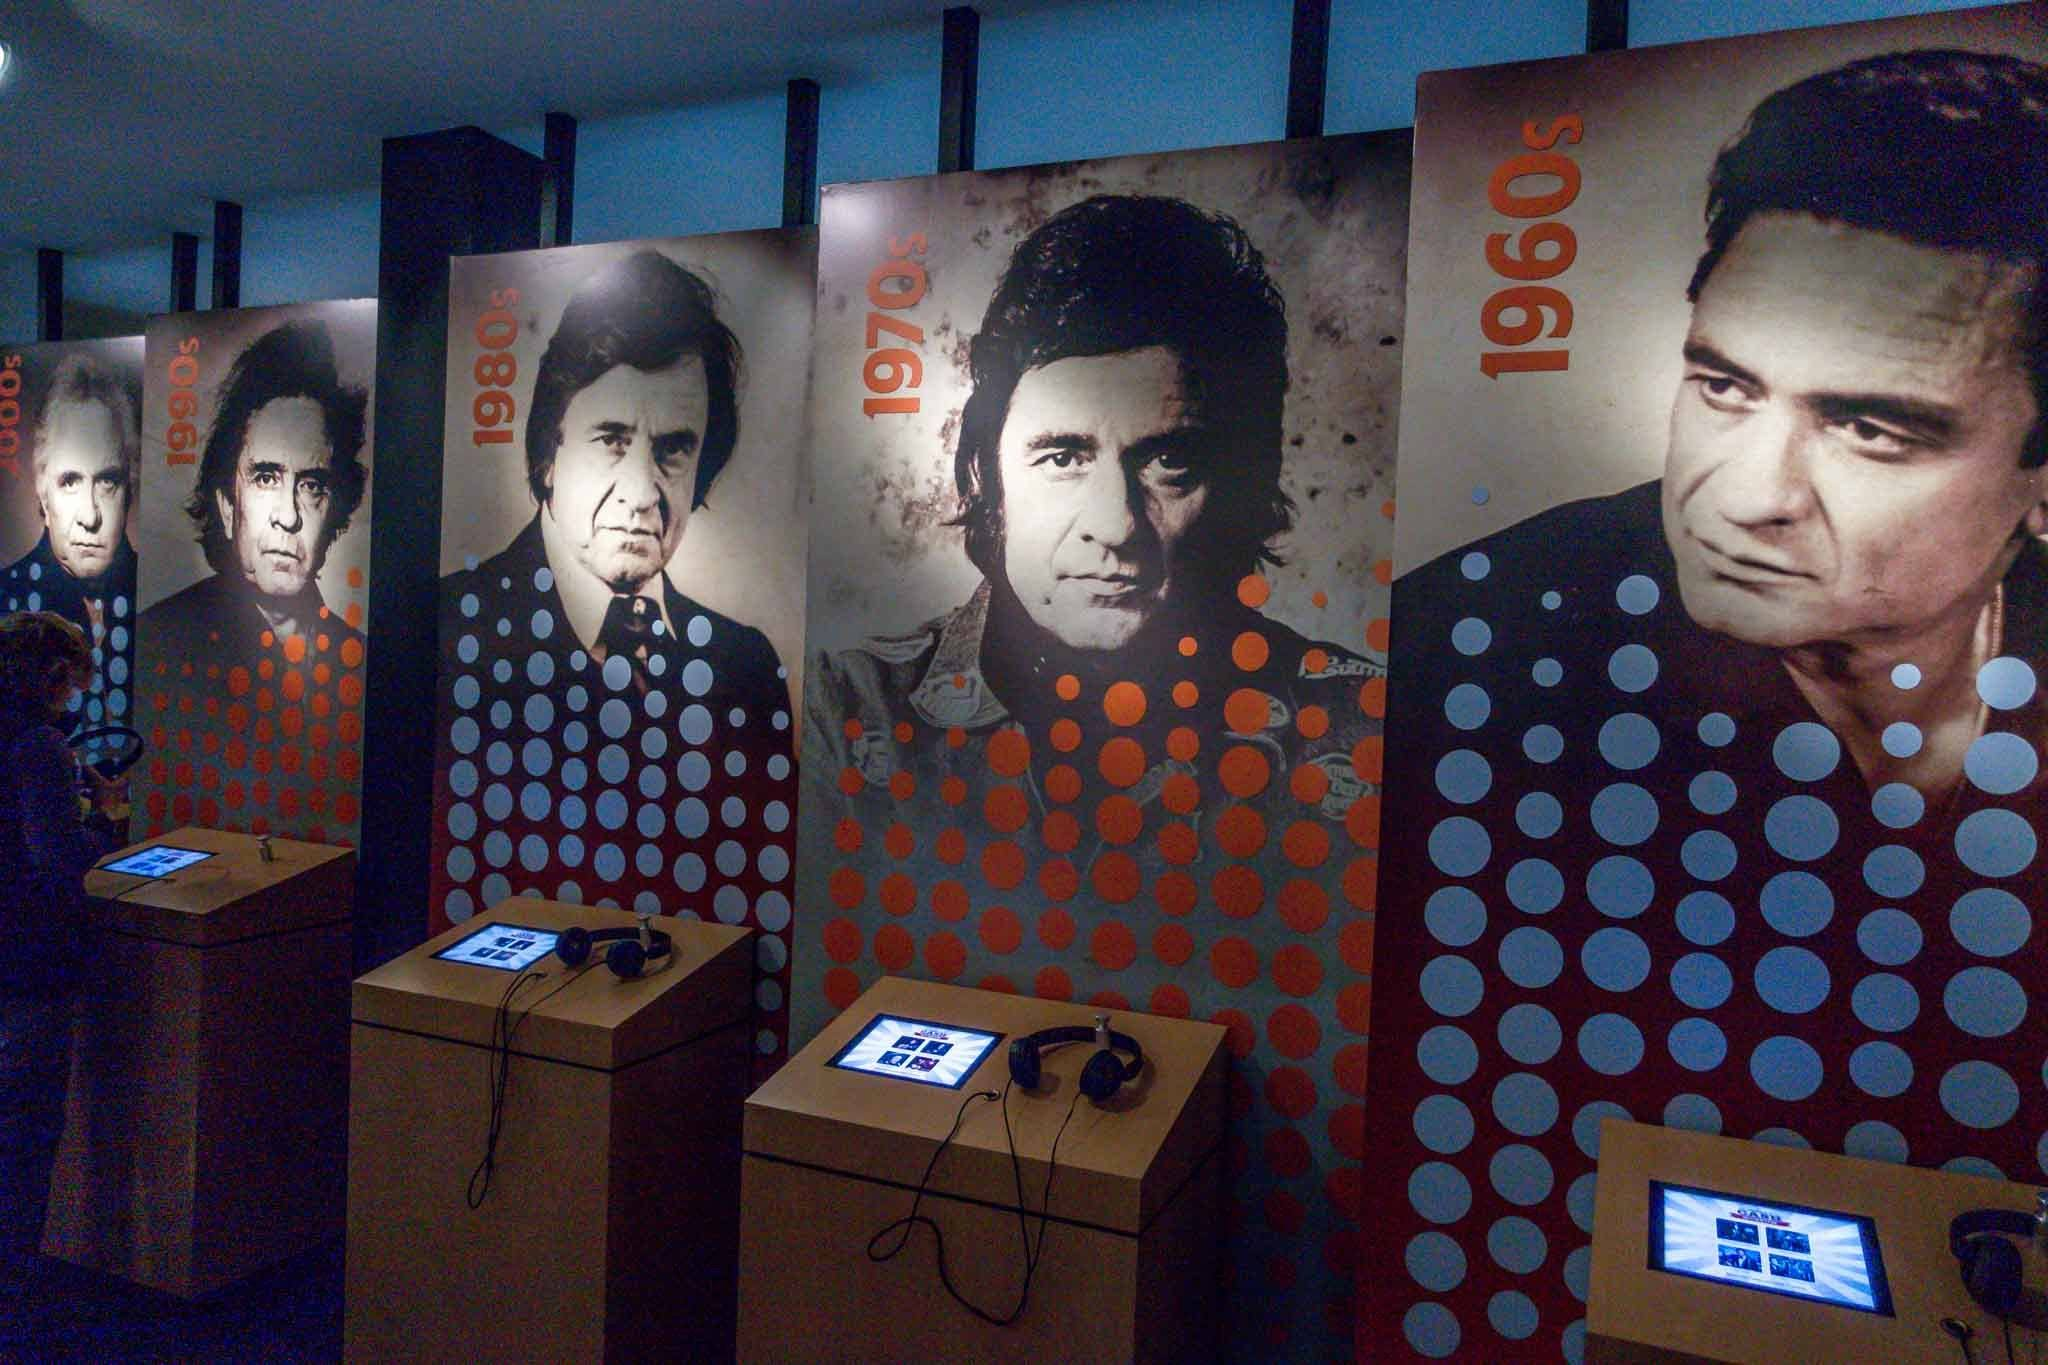 Interactive museum exhibits with photos of Johnny Cash